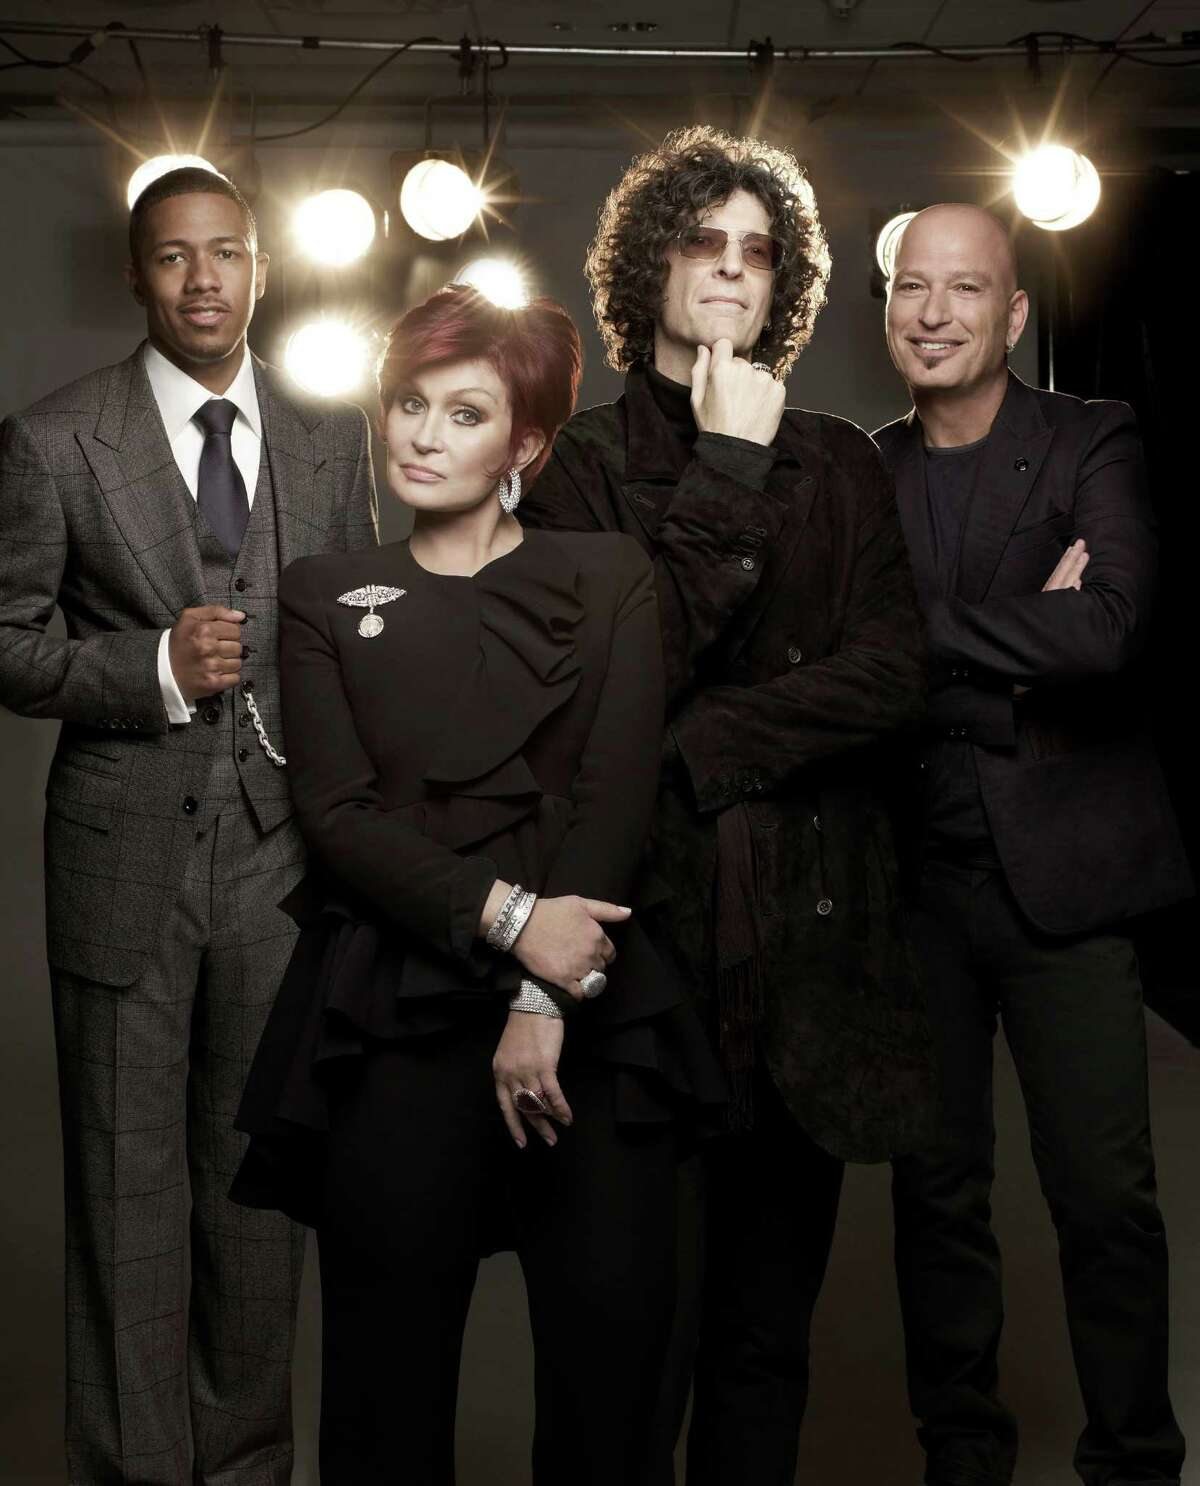 AMERICA'S GOT TALENT -- Season 7 -- Pictured: (l-r) Nick Cannon, Sharon Osbourne, Howard Stern, Howie Mandel --